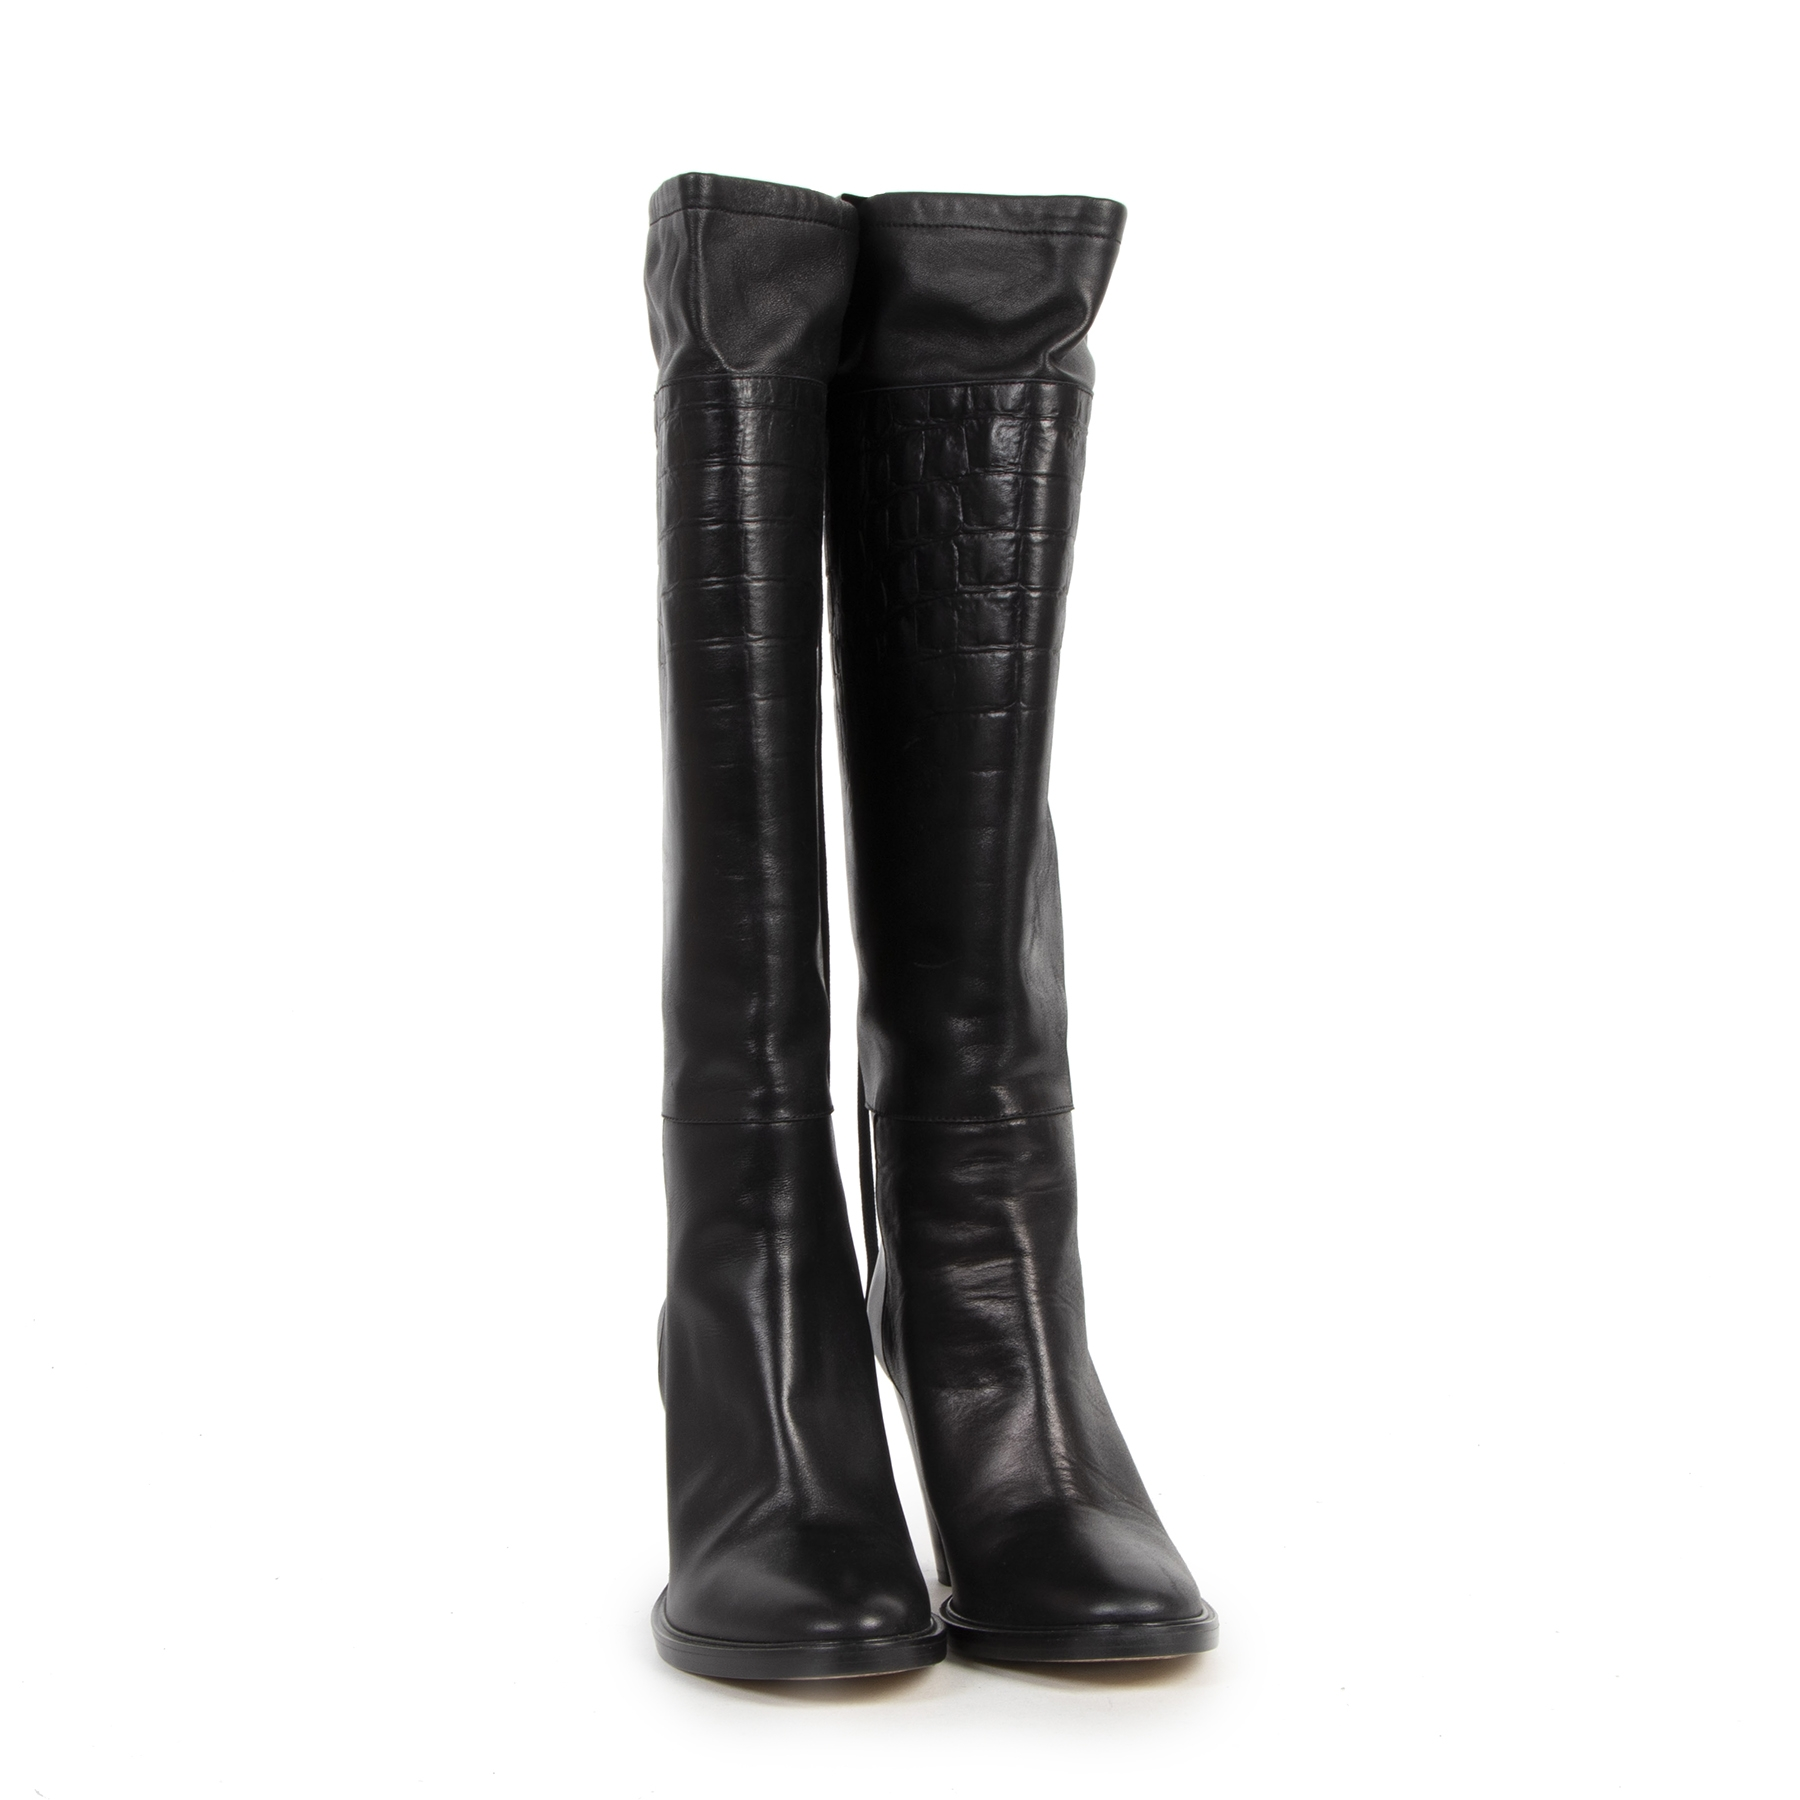 Buy authentic secondhand A.F Van De Vorst Black Croco Leather Boots - Size 38 at the right price at LabelLOV vintage webshop. Safe and secure online shopping. Koop authentieke tweedehands A.F Van De Vorst Black Croco Leather Boots - Size 38 met de juiste